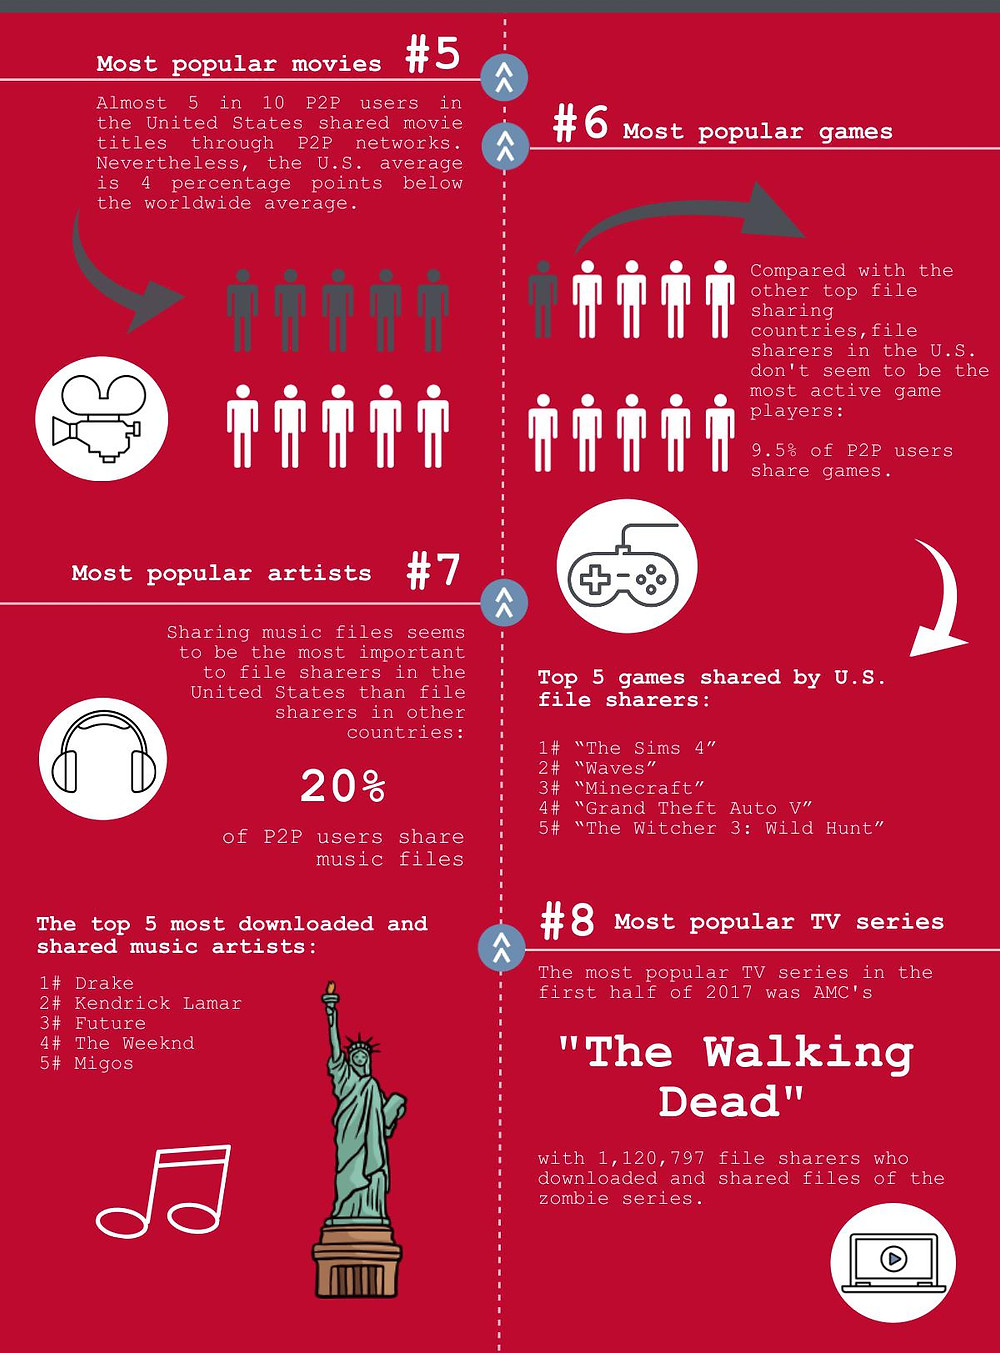 Infographic. Fact 5-8 about what's trending in the U.S. based on the most pirated content in P2P networks